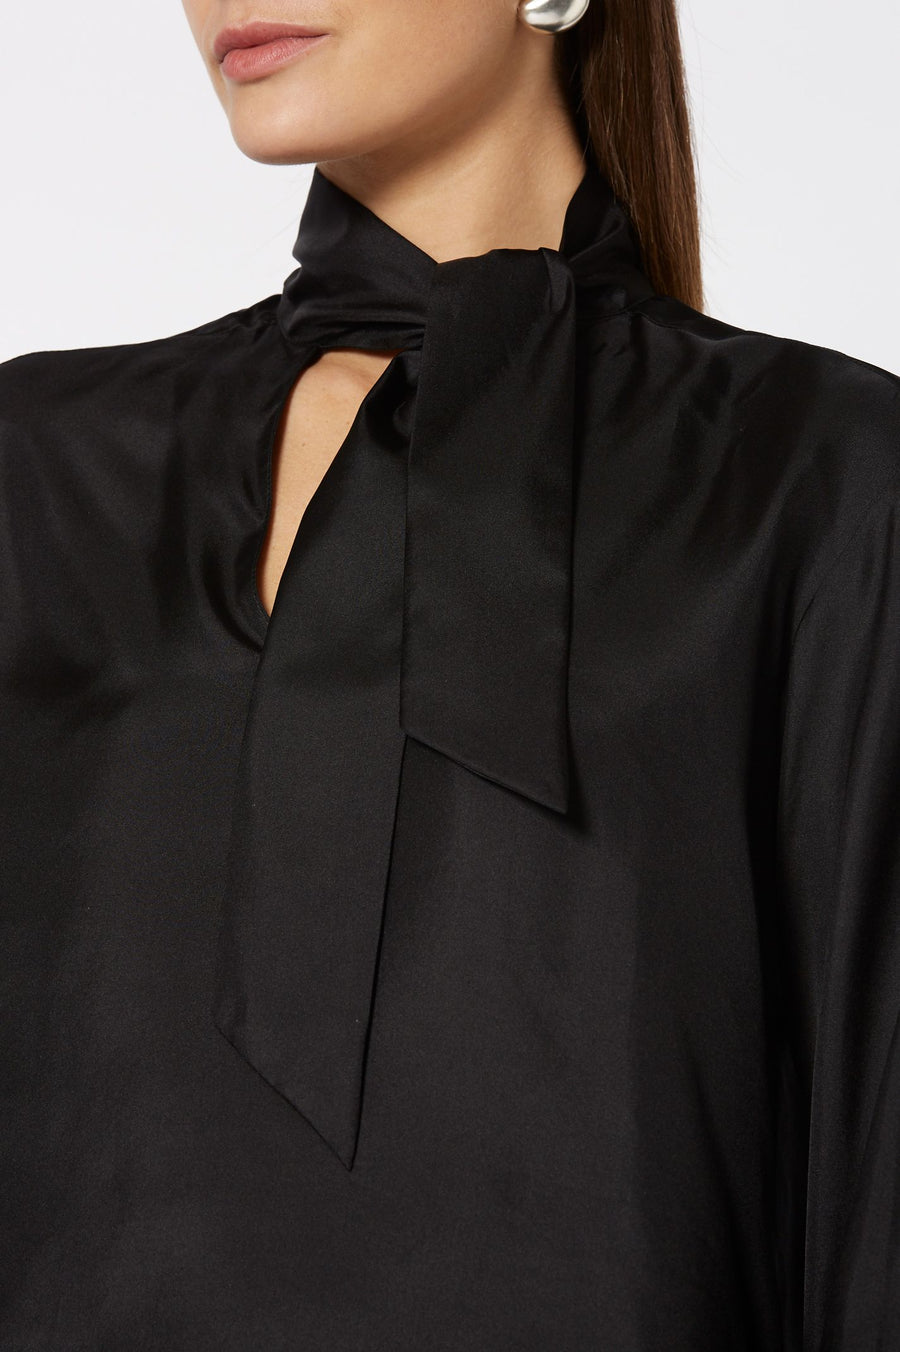 Silk TIe Neck Blouse Black, Loose Fit, Long Sleeves, Tie Neck Cravat